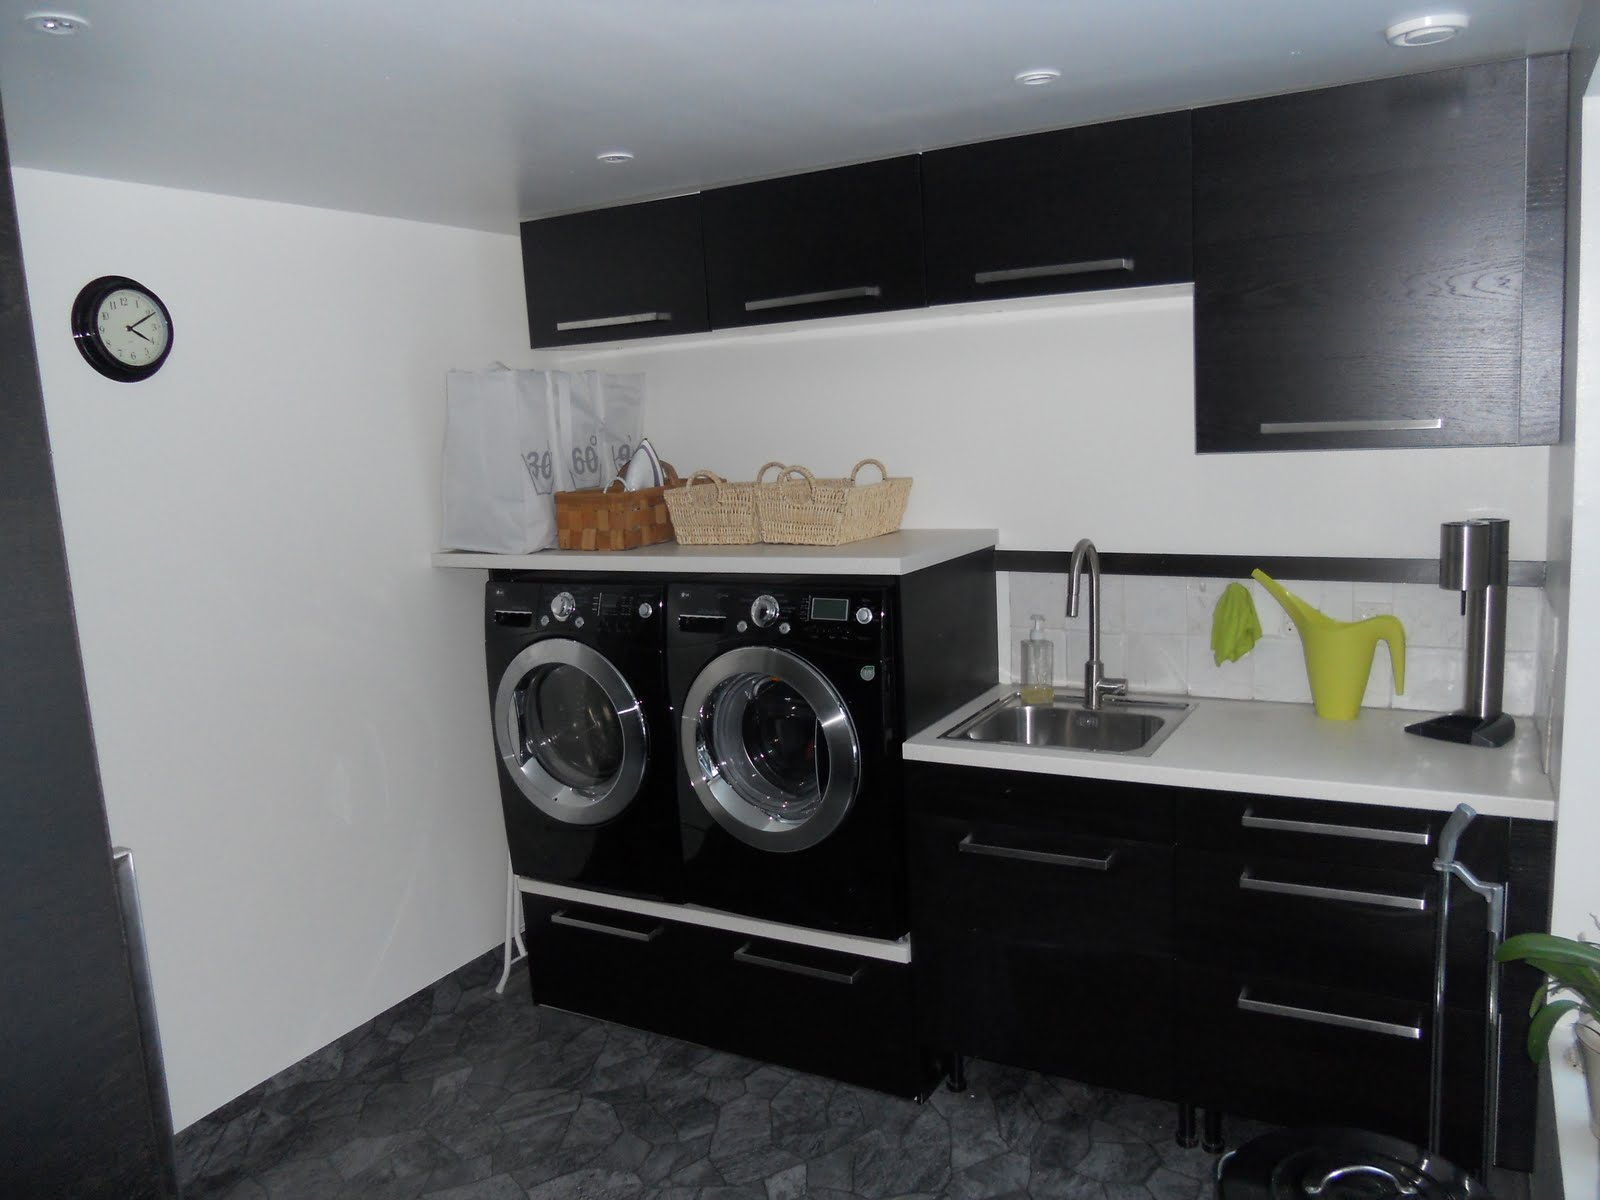 Laundry room cabinets black - Exclusive Laundry